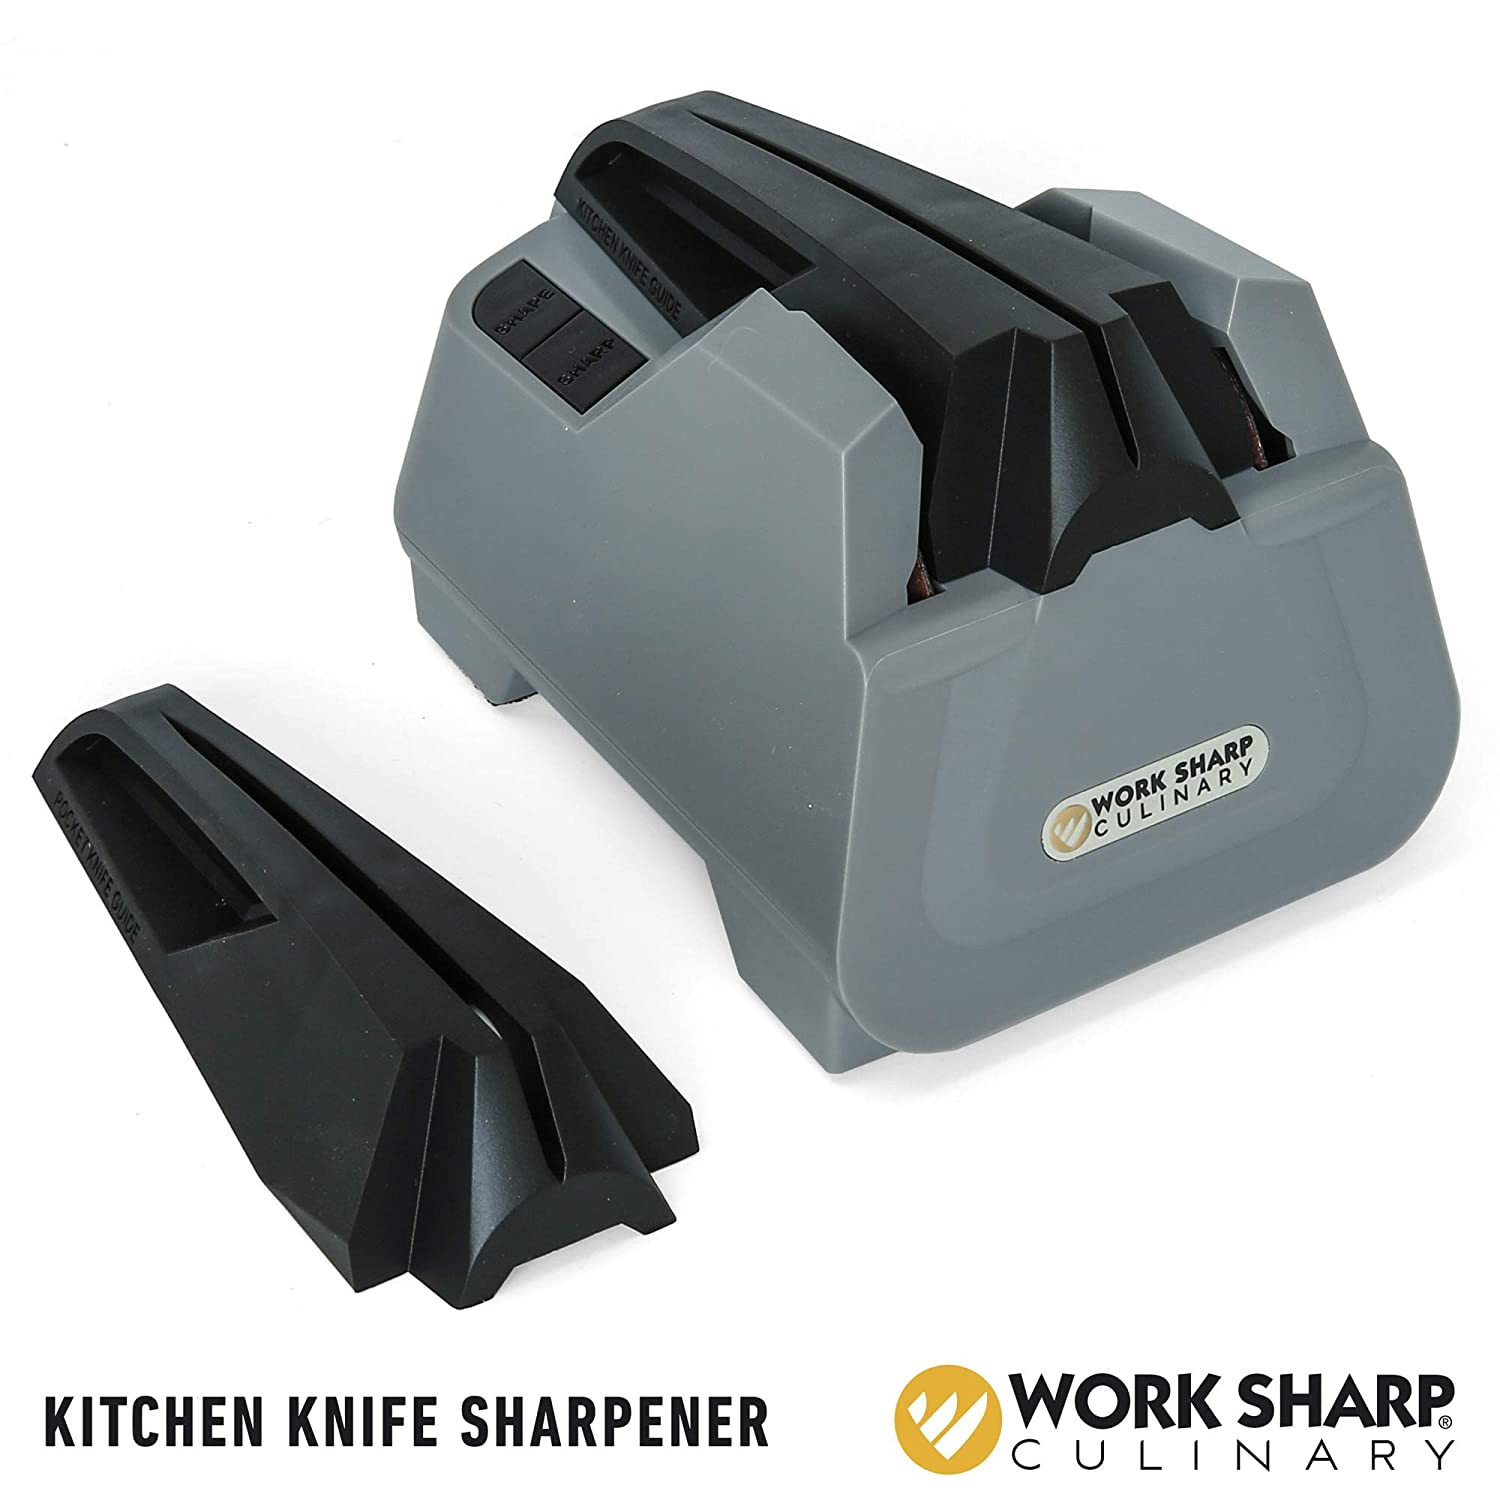 Work Sharp Culinary E2 Kitchen and Pocket Knife Sharpener